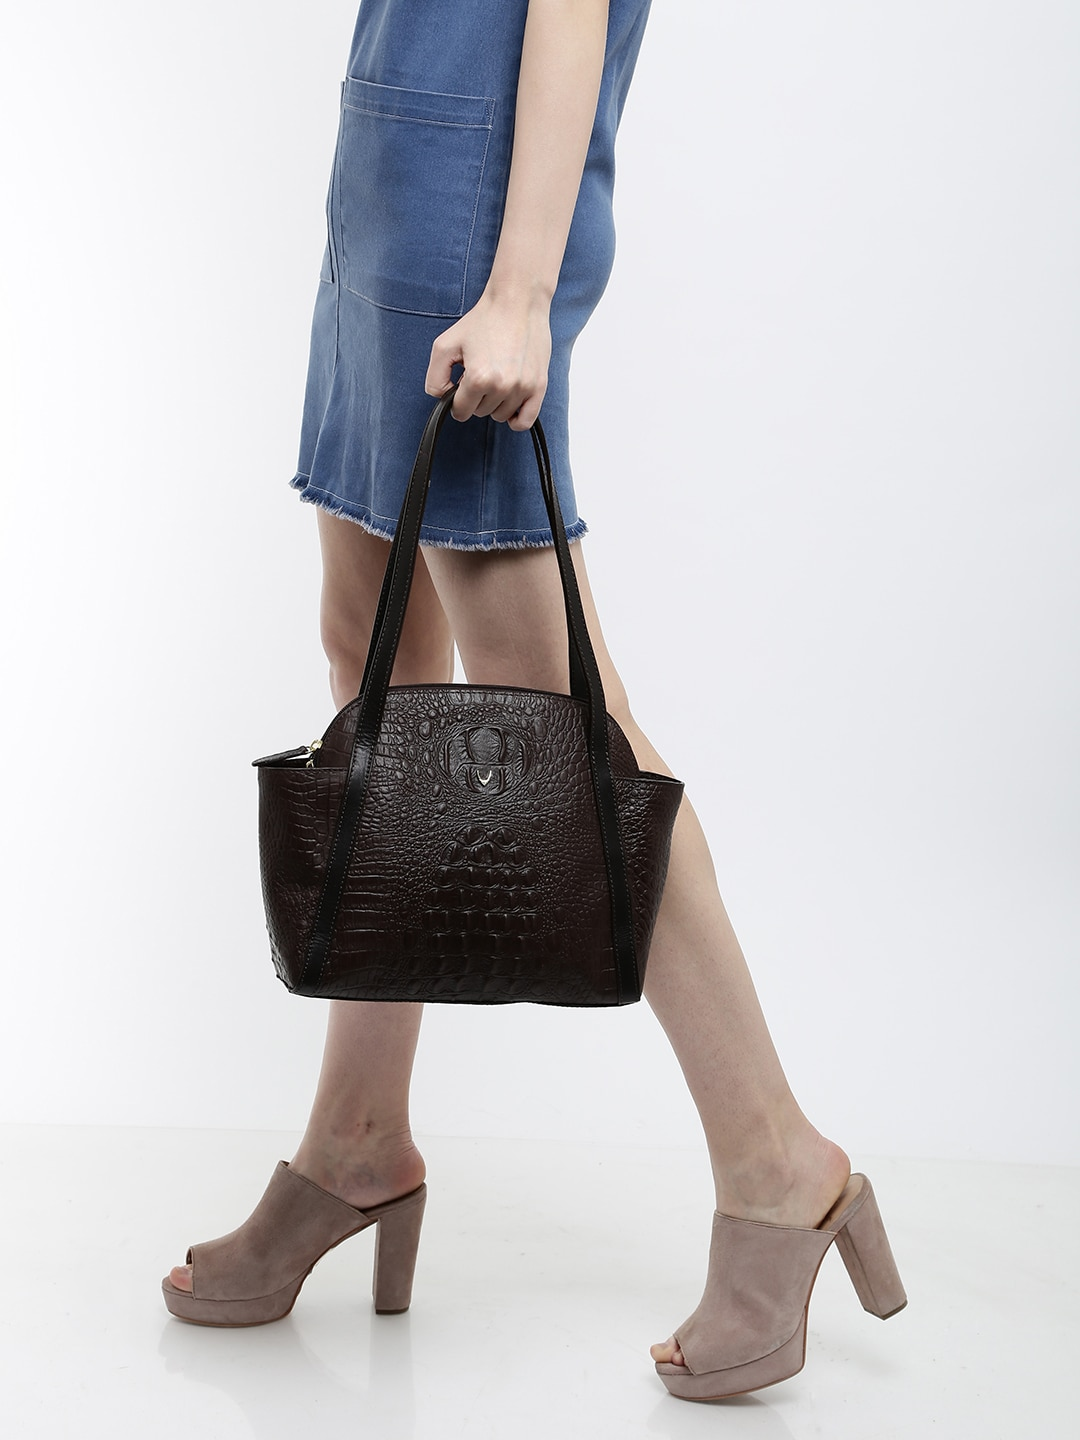 Hidesign - Buy Hidesign Handbags, Wallets & Accessories Online in ...